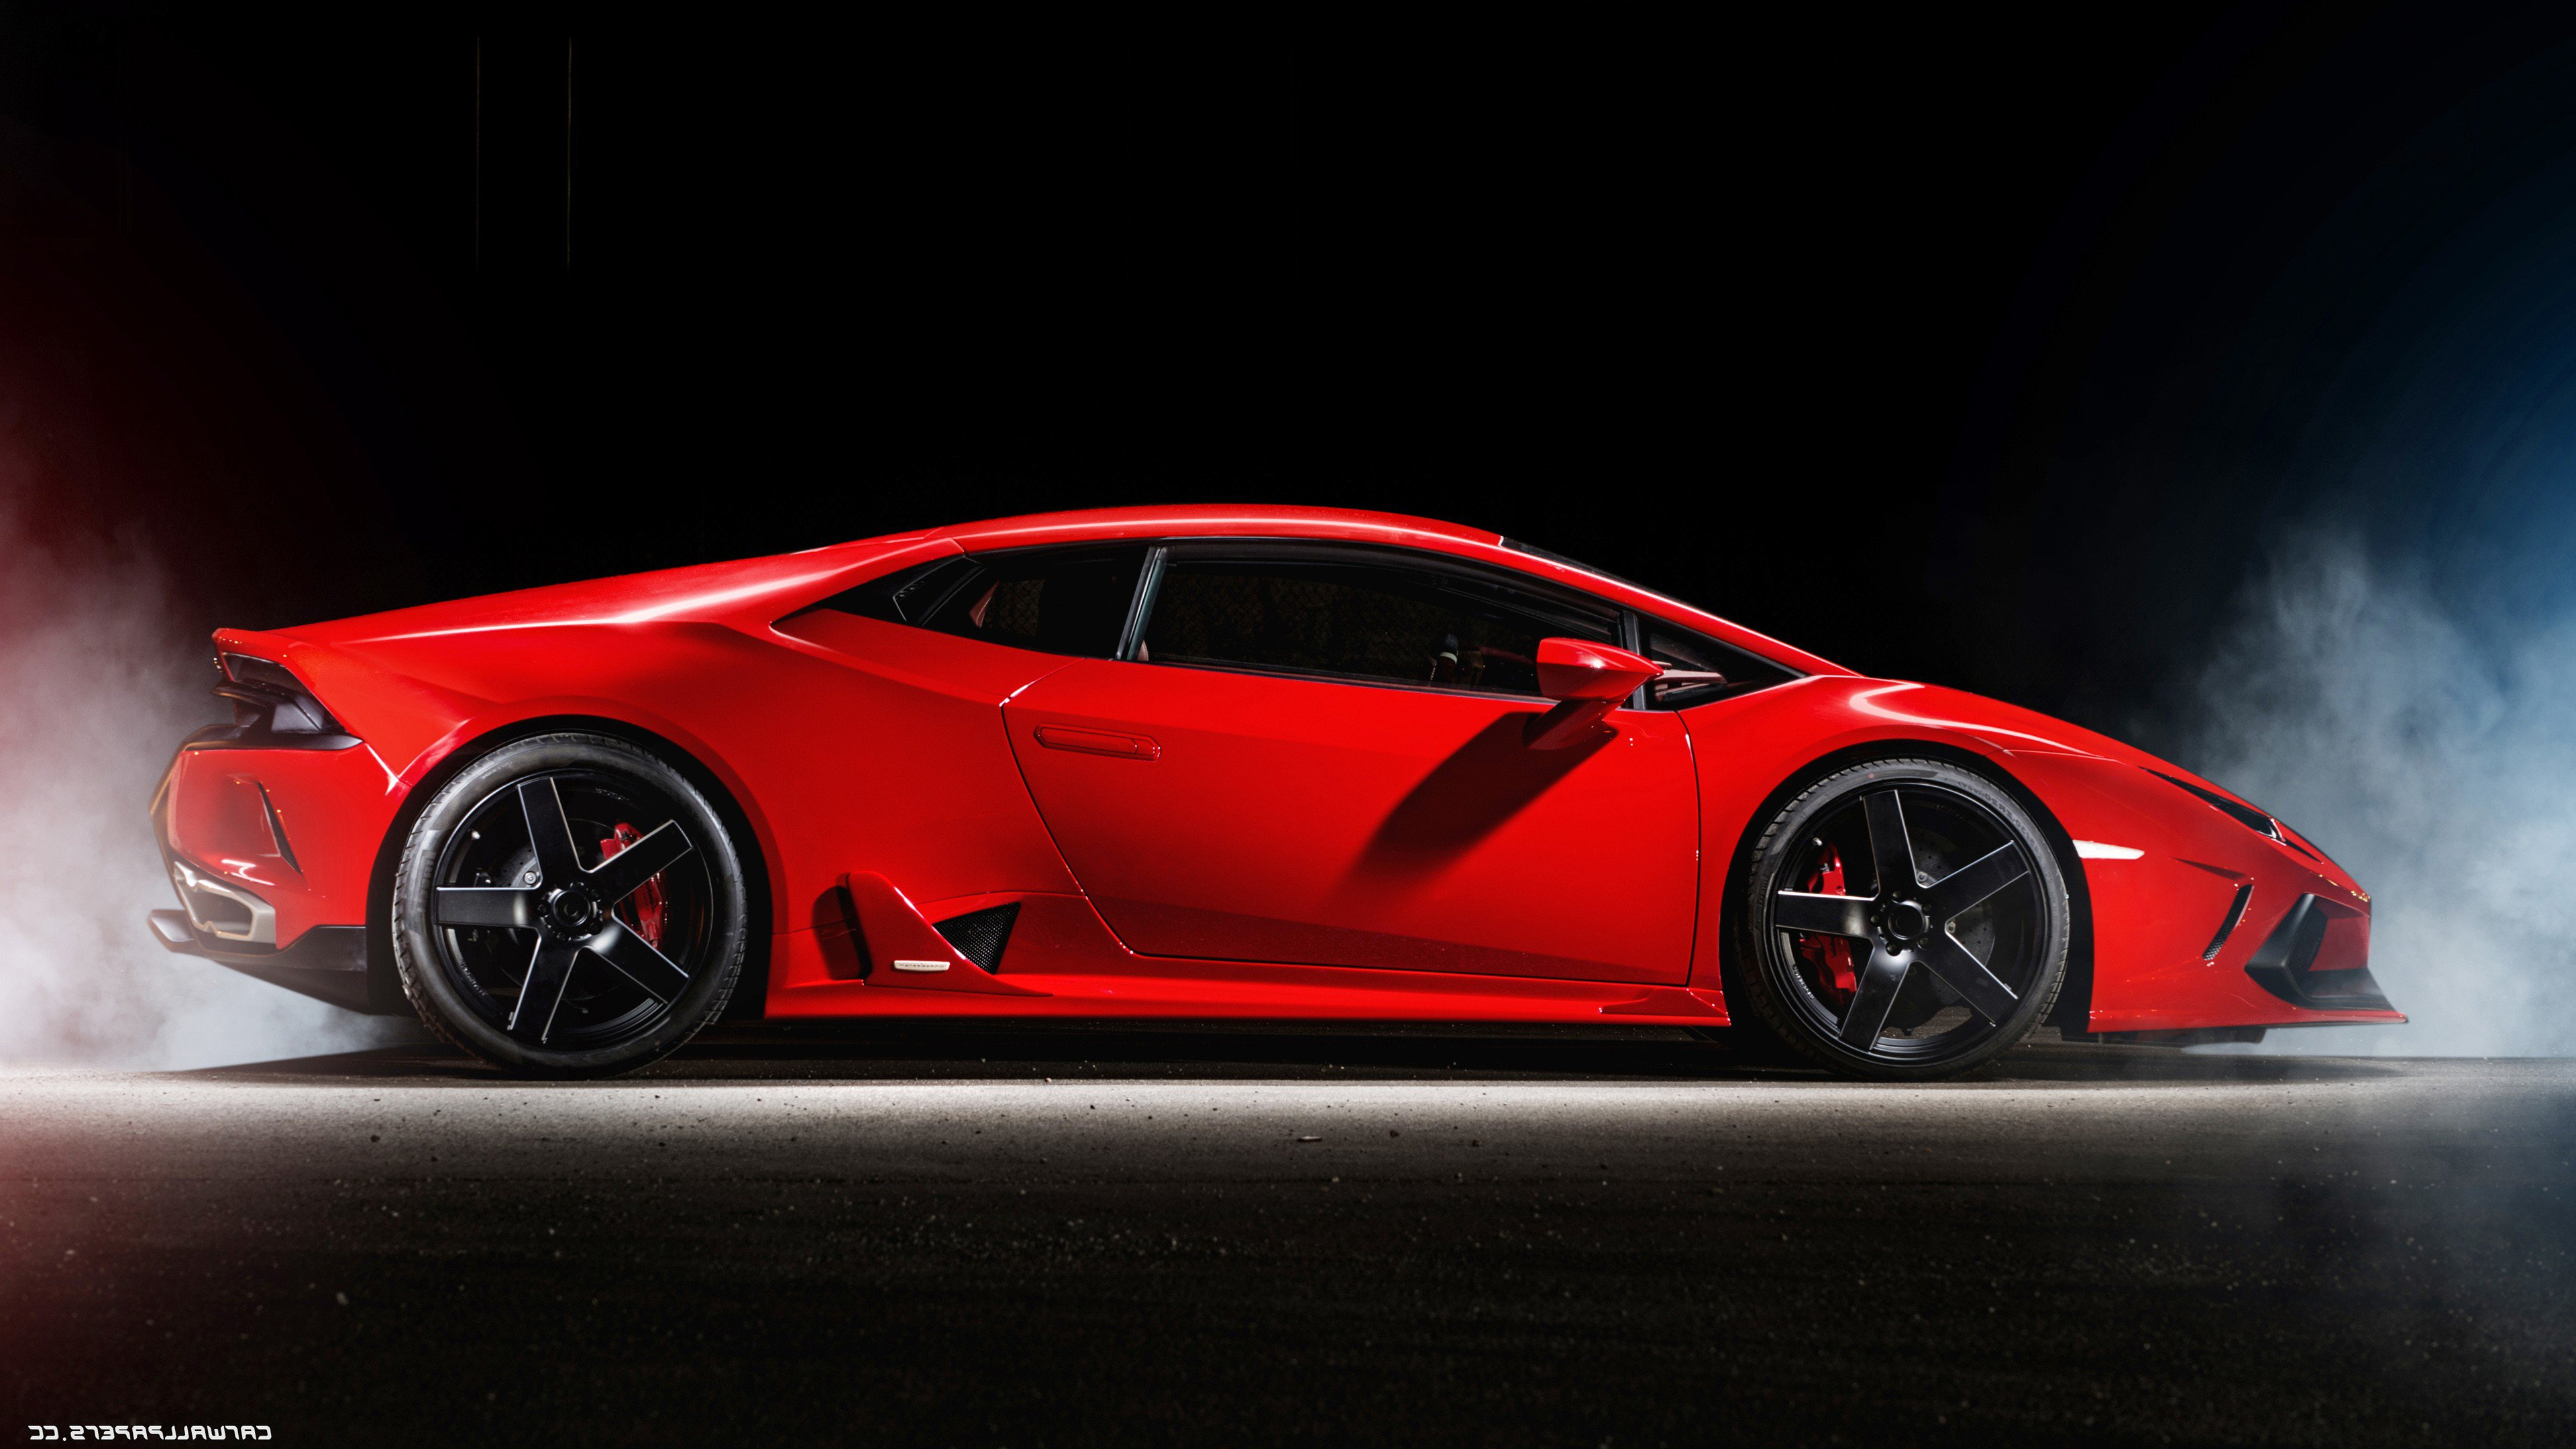 download pink lamborghini 4k - photo #26